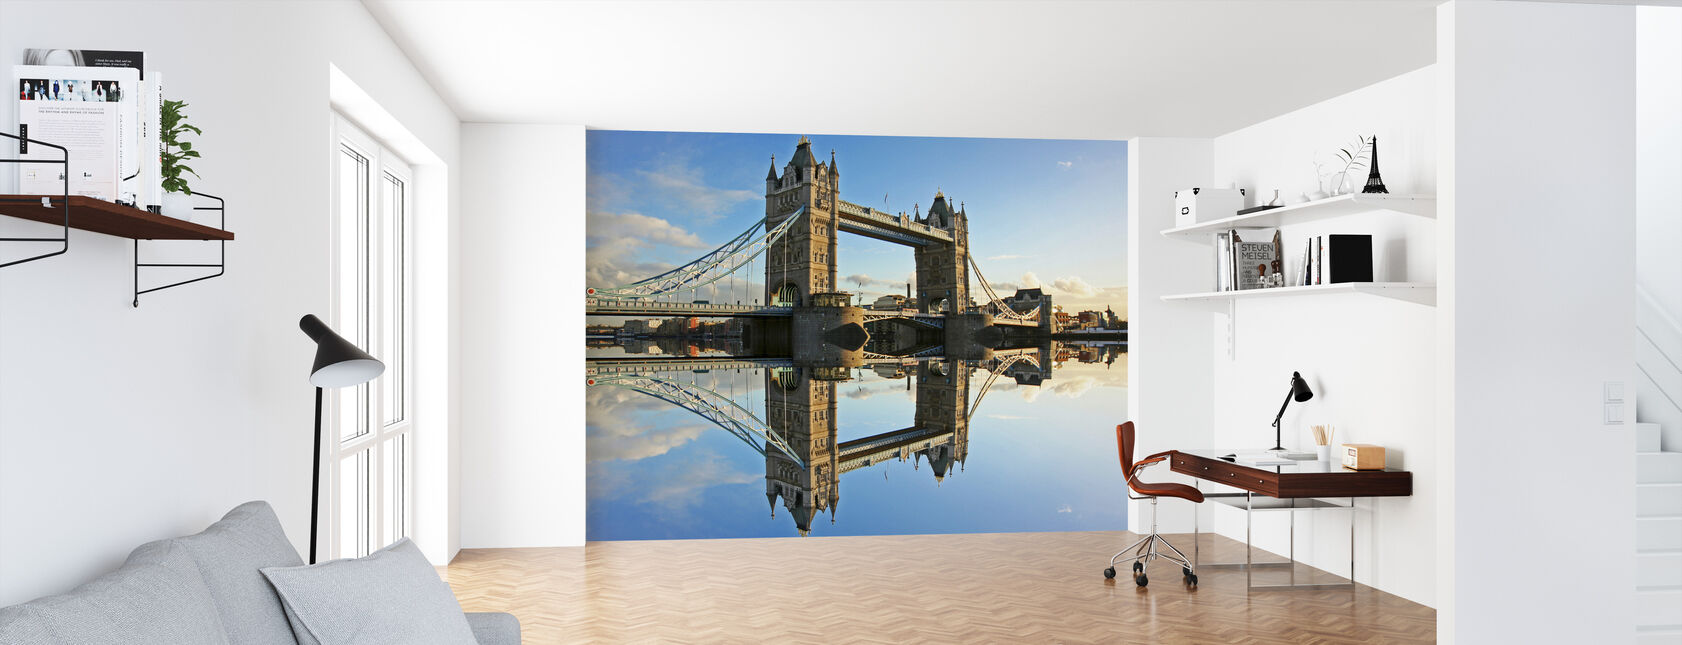 Tower Bridge at Sunset - Wallpaper - Office